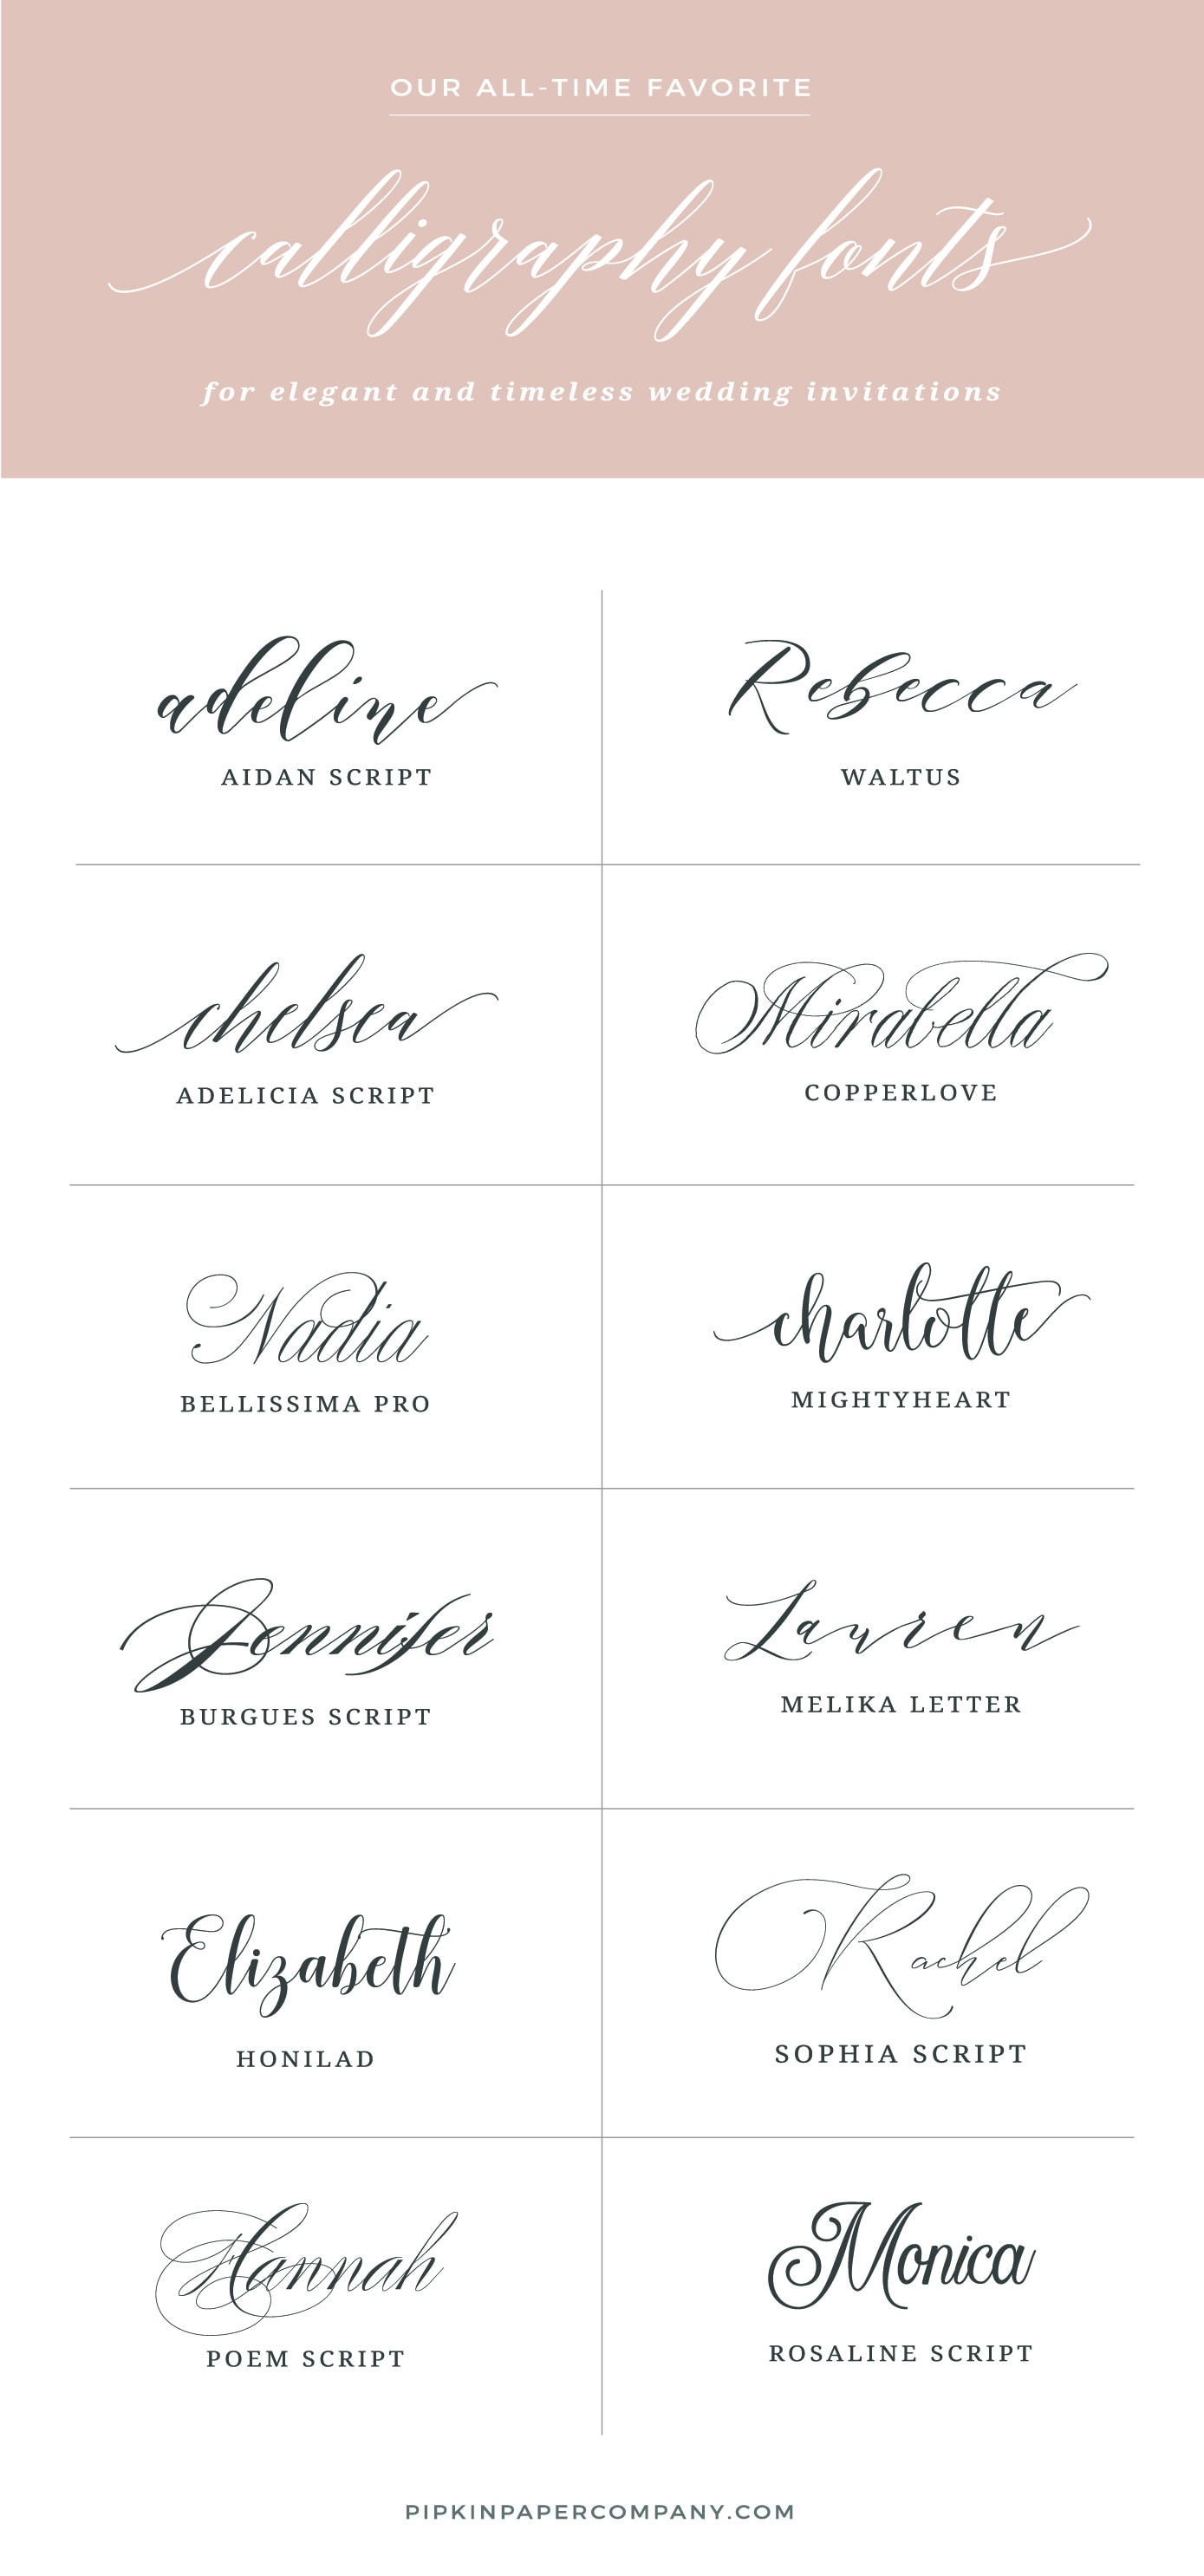 Wedding Invitation Fonts.The Best Fonts For Wedding Invitations Pipkin Paper Company